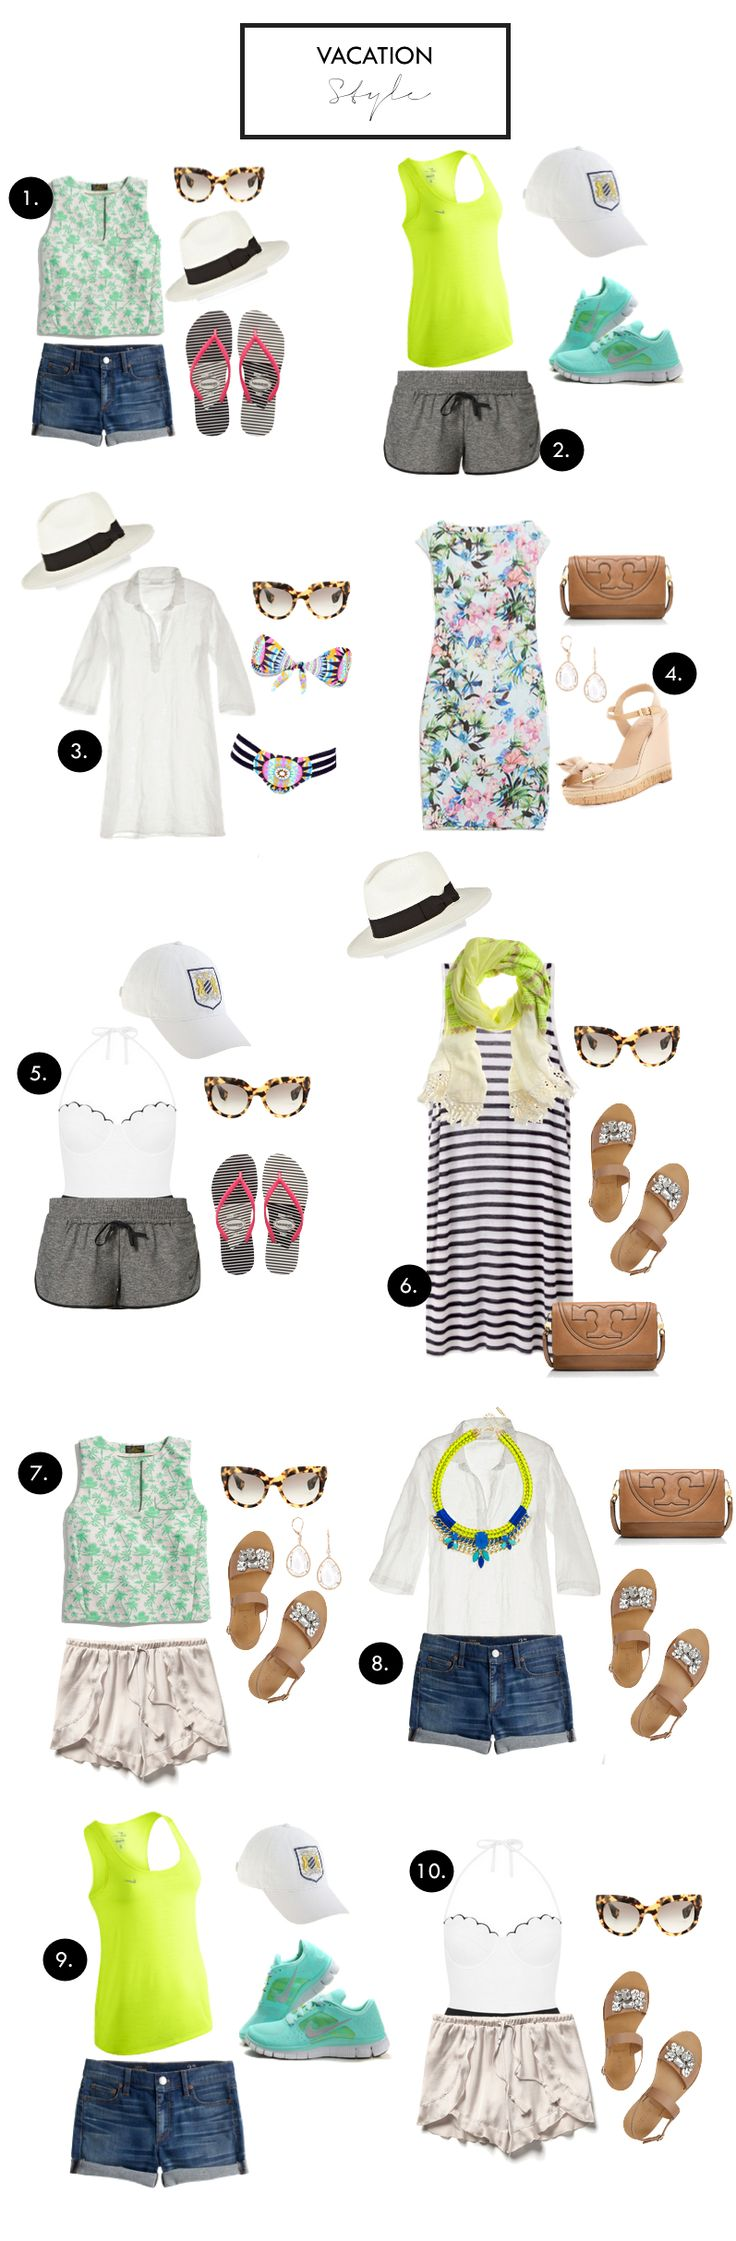 Reversed clipart clothing On 25+ fashion Best Pinterest